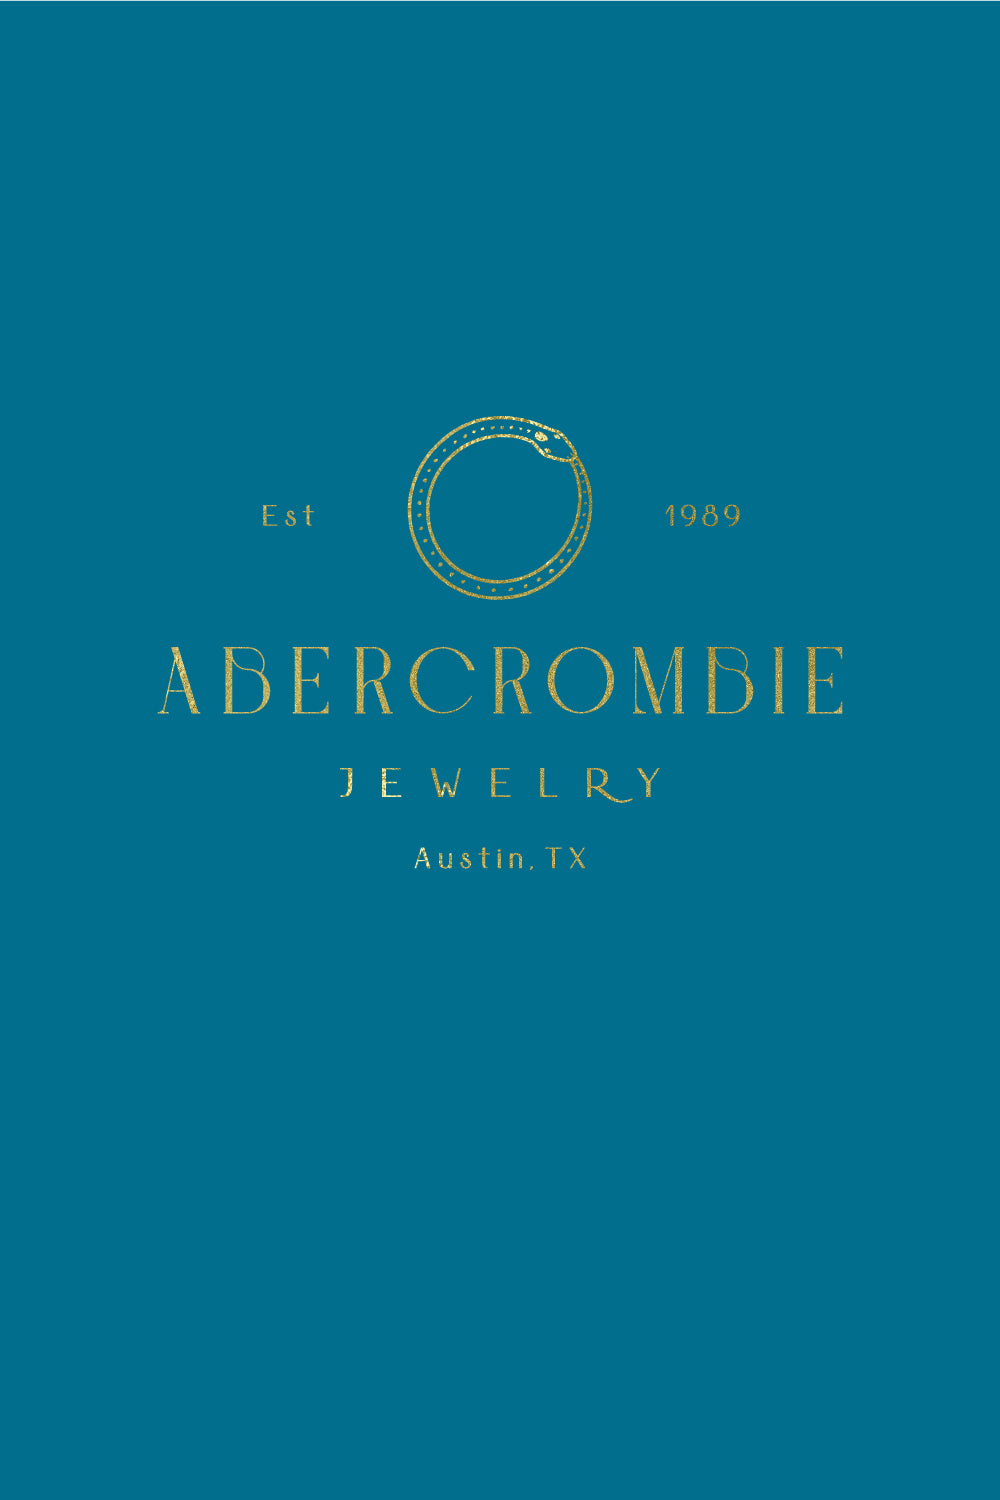 Abercrombie Jewelry Logo and Branding by Erika Firm